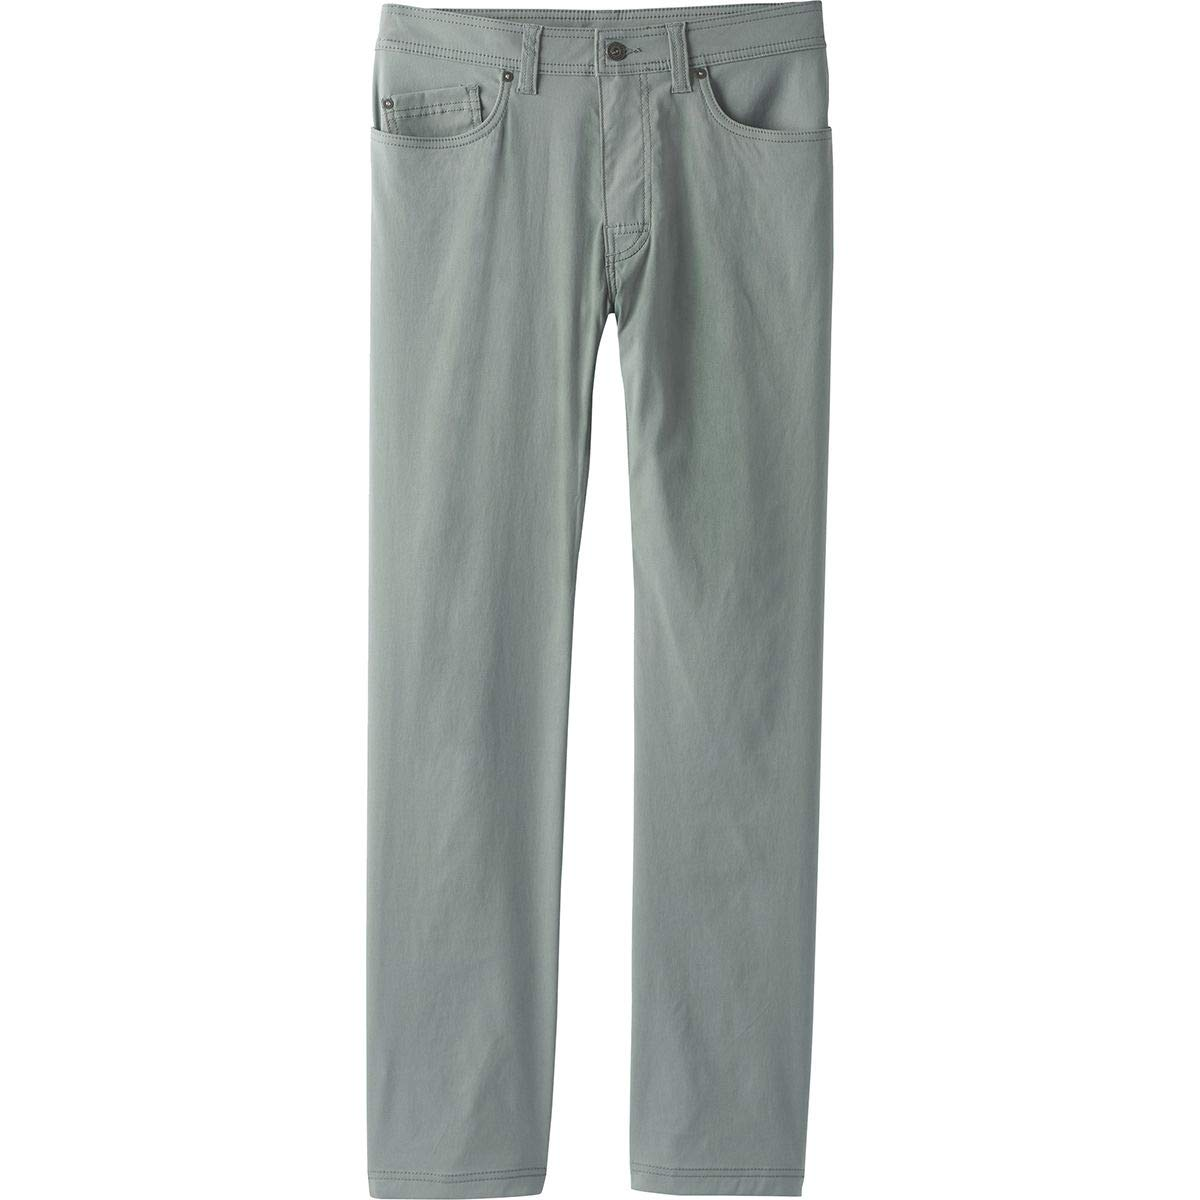 prAna Men's Brion Pant 32'' Inseam, Aloe, 28